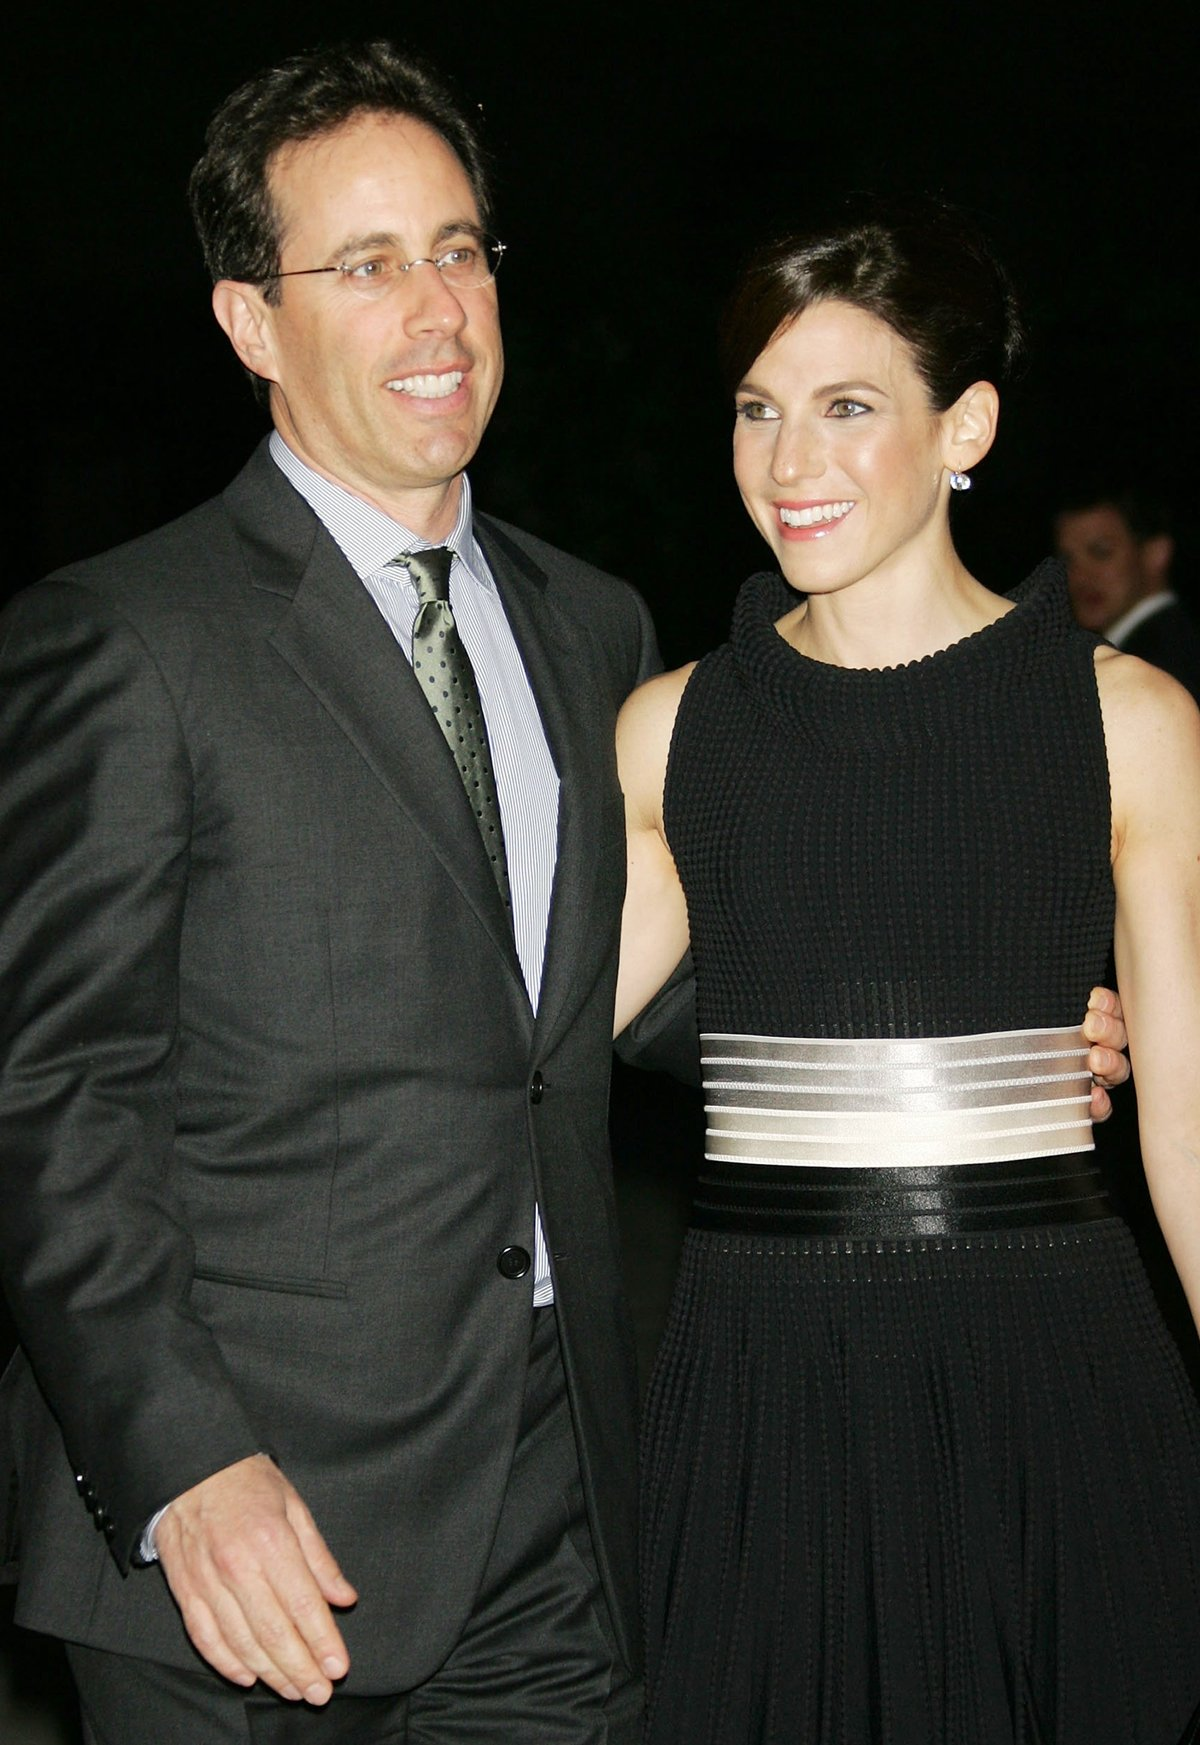 Jerry Seinfeld first met Jessica Seinfeld ( born Nina Danielle Sklar) in August 1998 at a Reebok gym on the Upper West Side of Manhattan